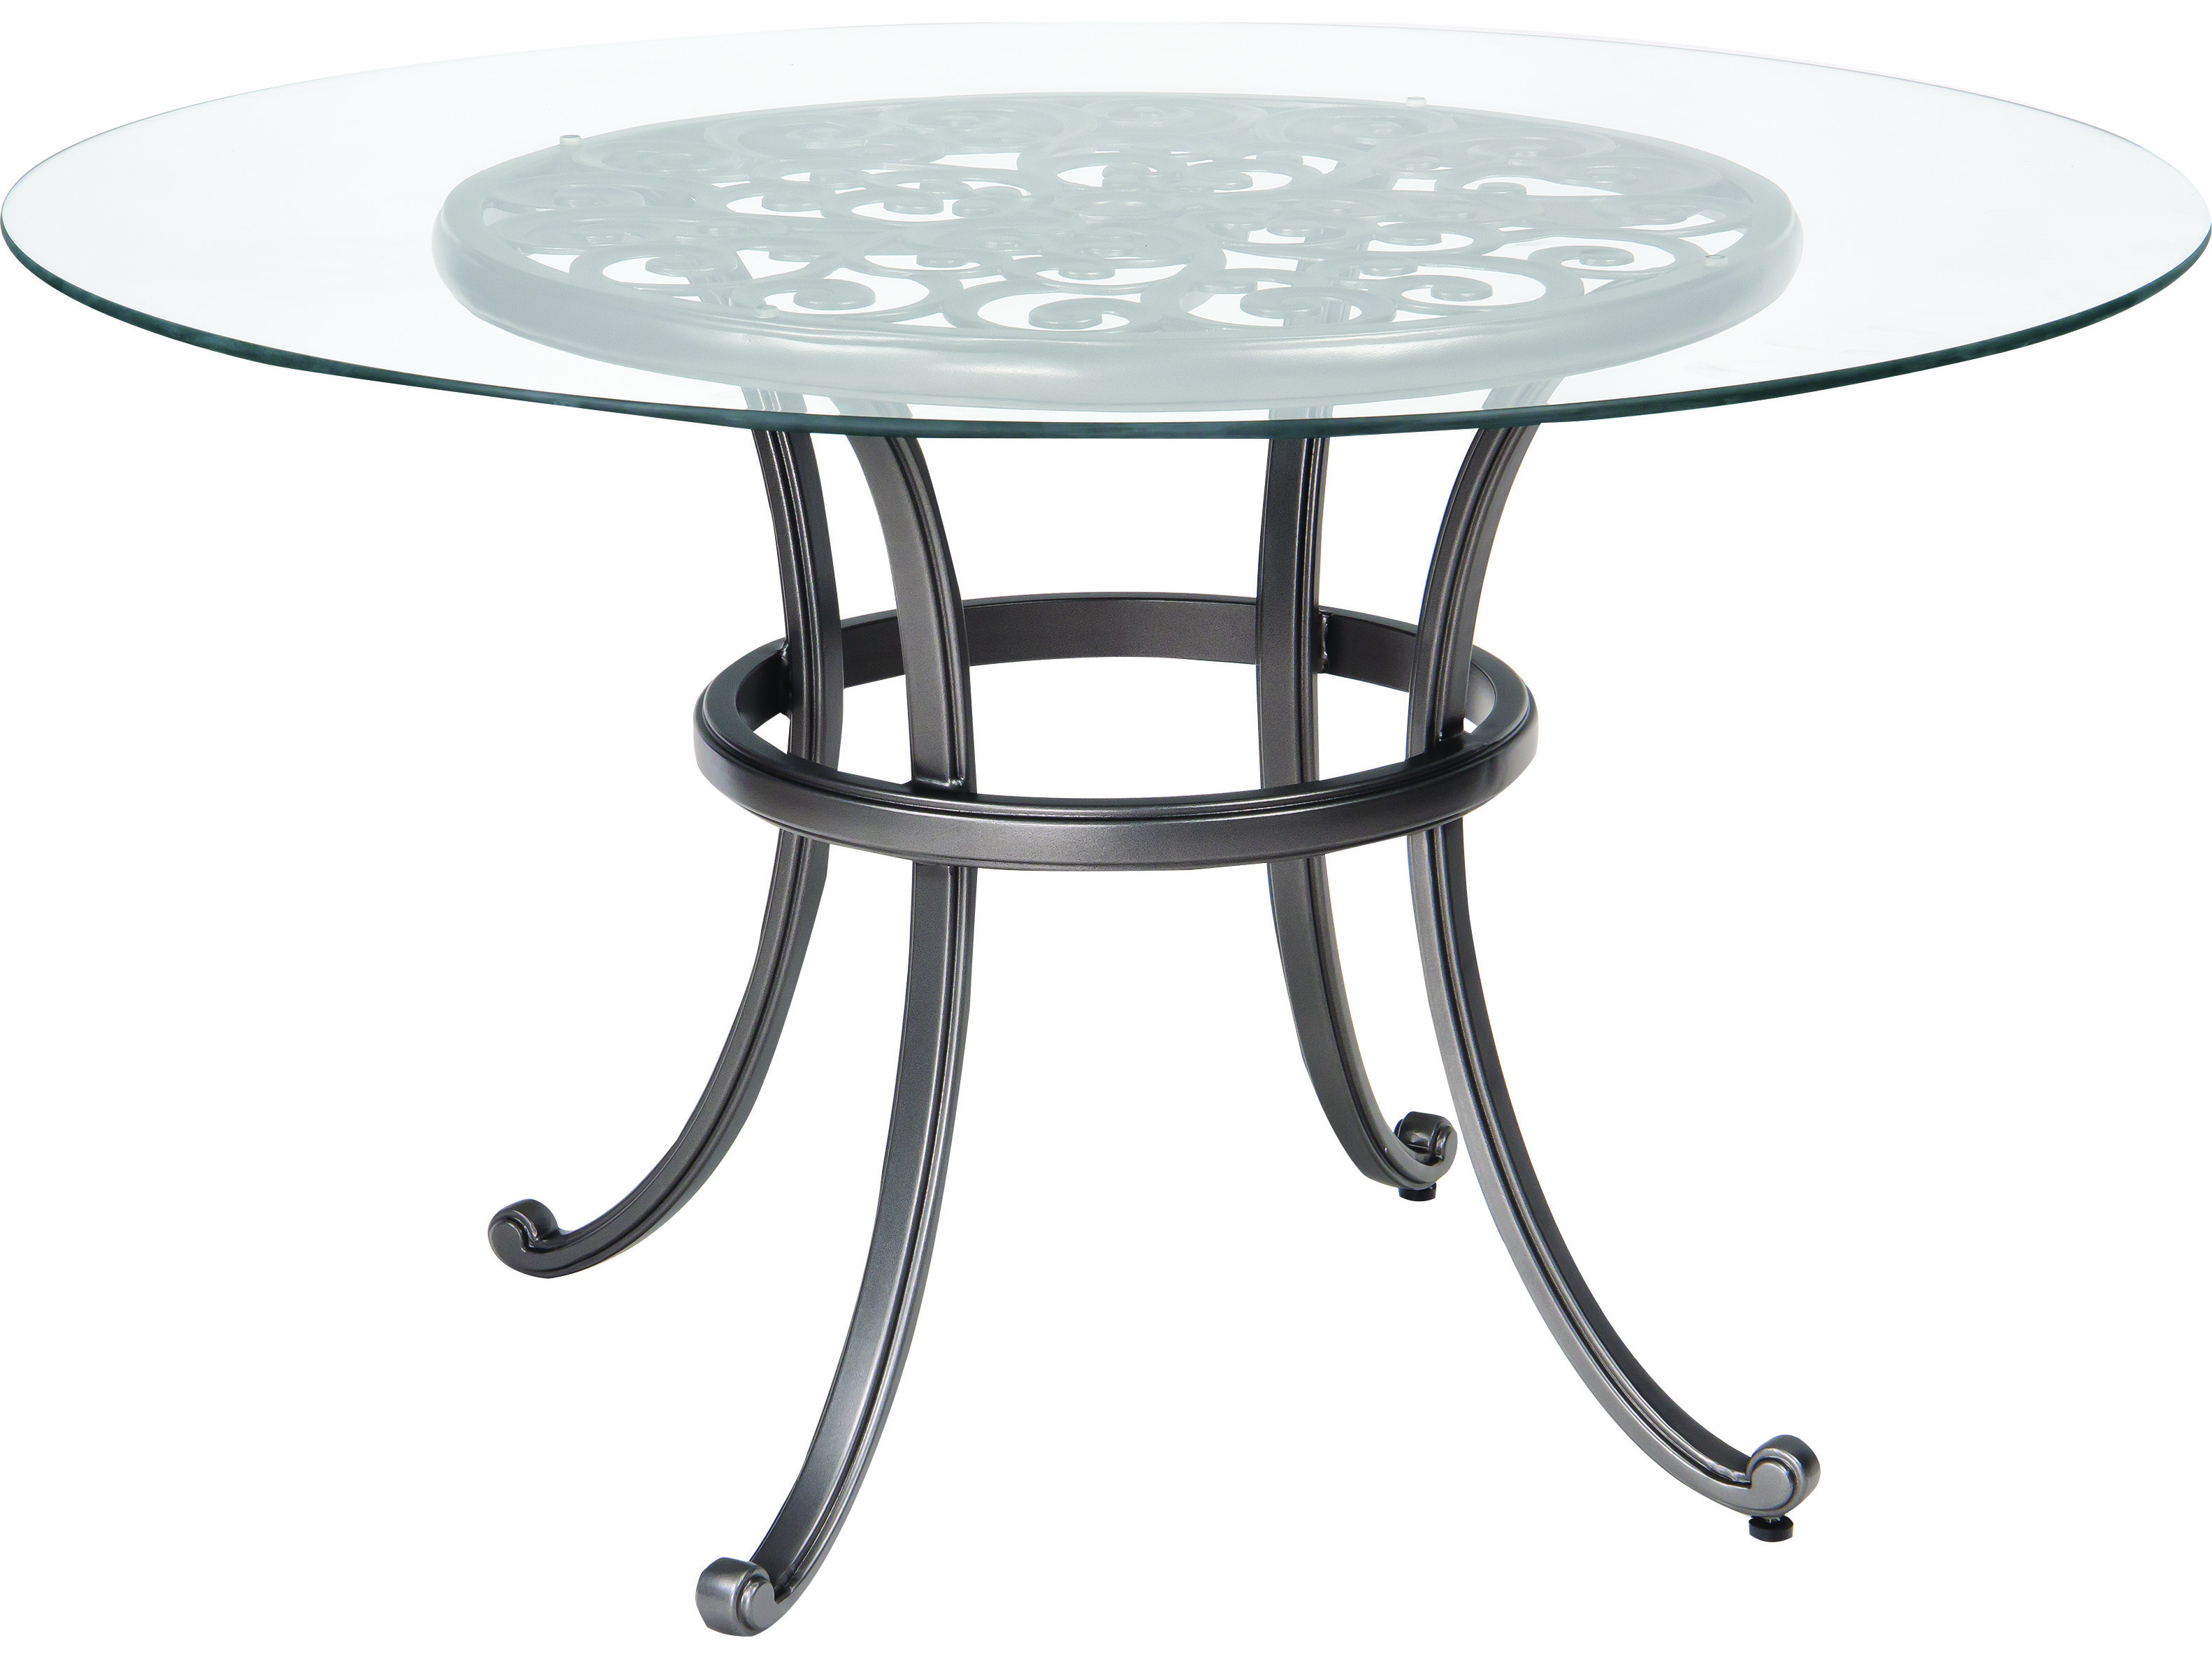 Woodard new orleans cast aluminum 48 round glass top table for Outdoor dining table glass top